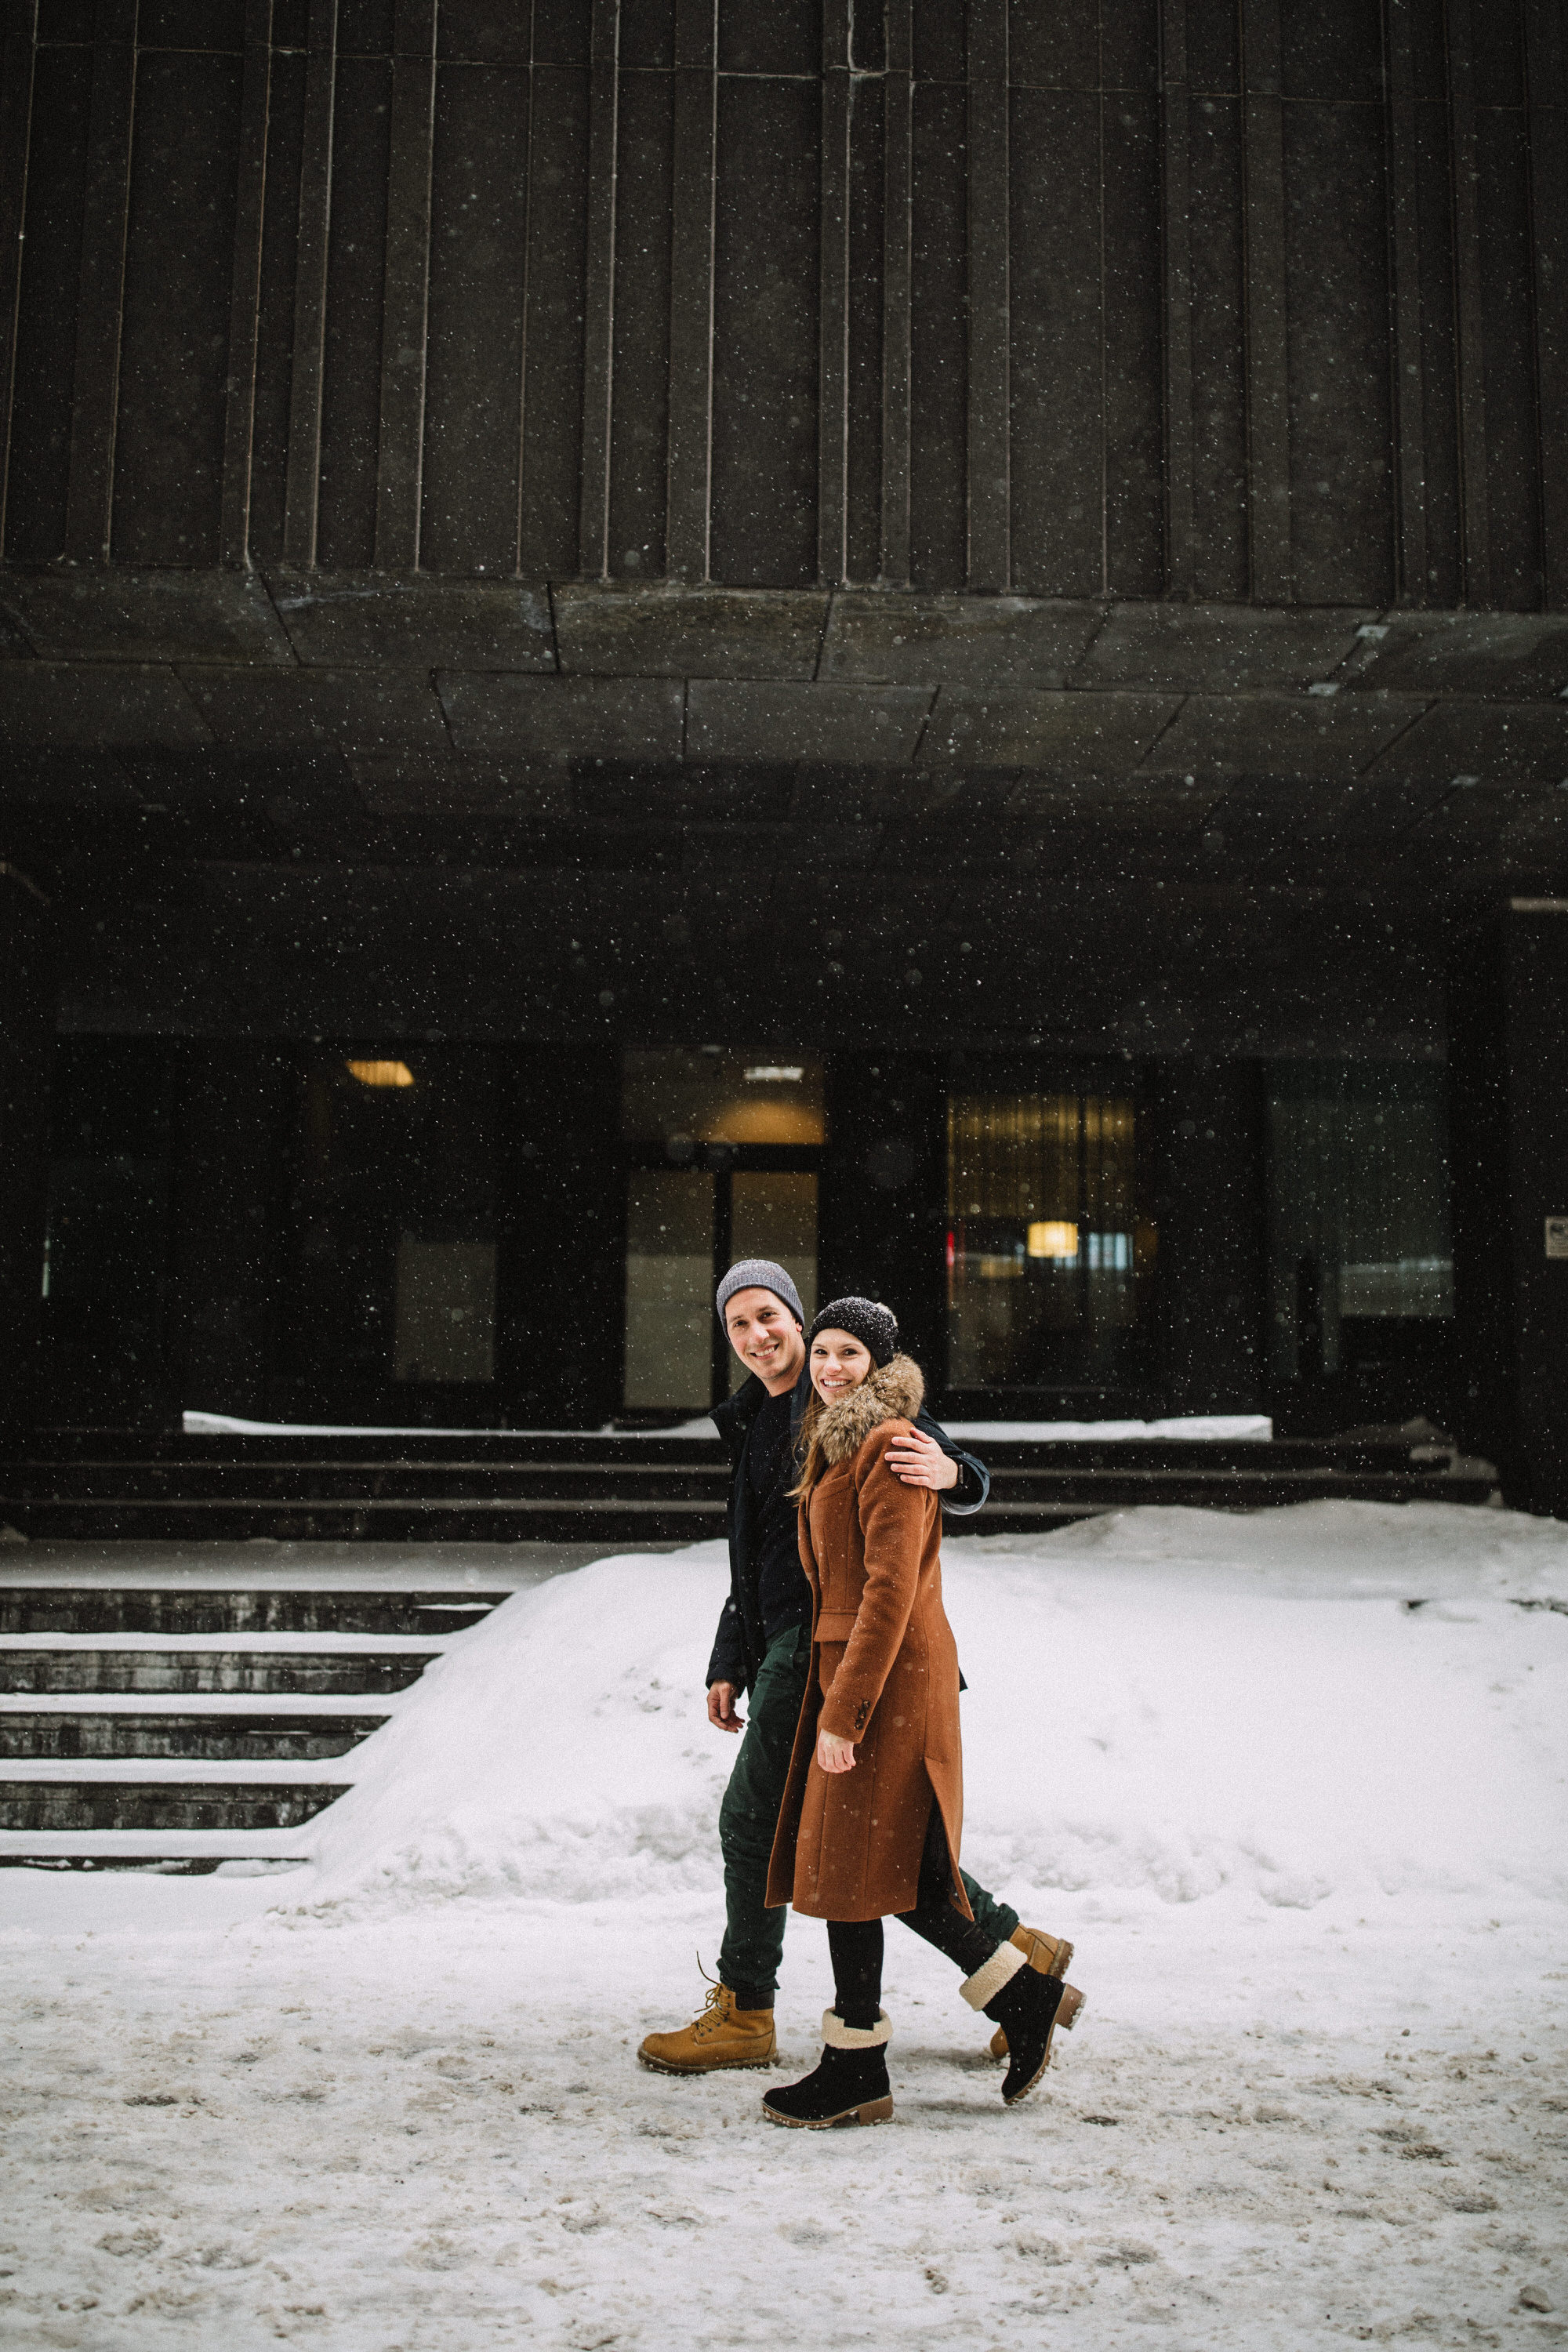 A stroll though vieux port Montreal during their winter engagement session with Montreal photographer Brent Calis.